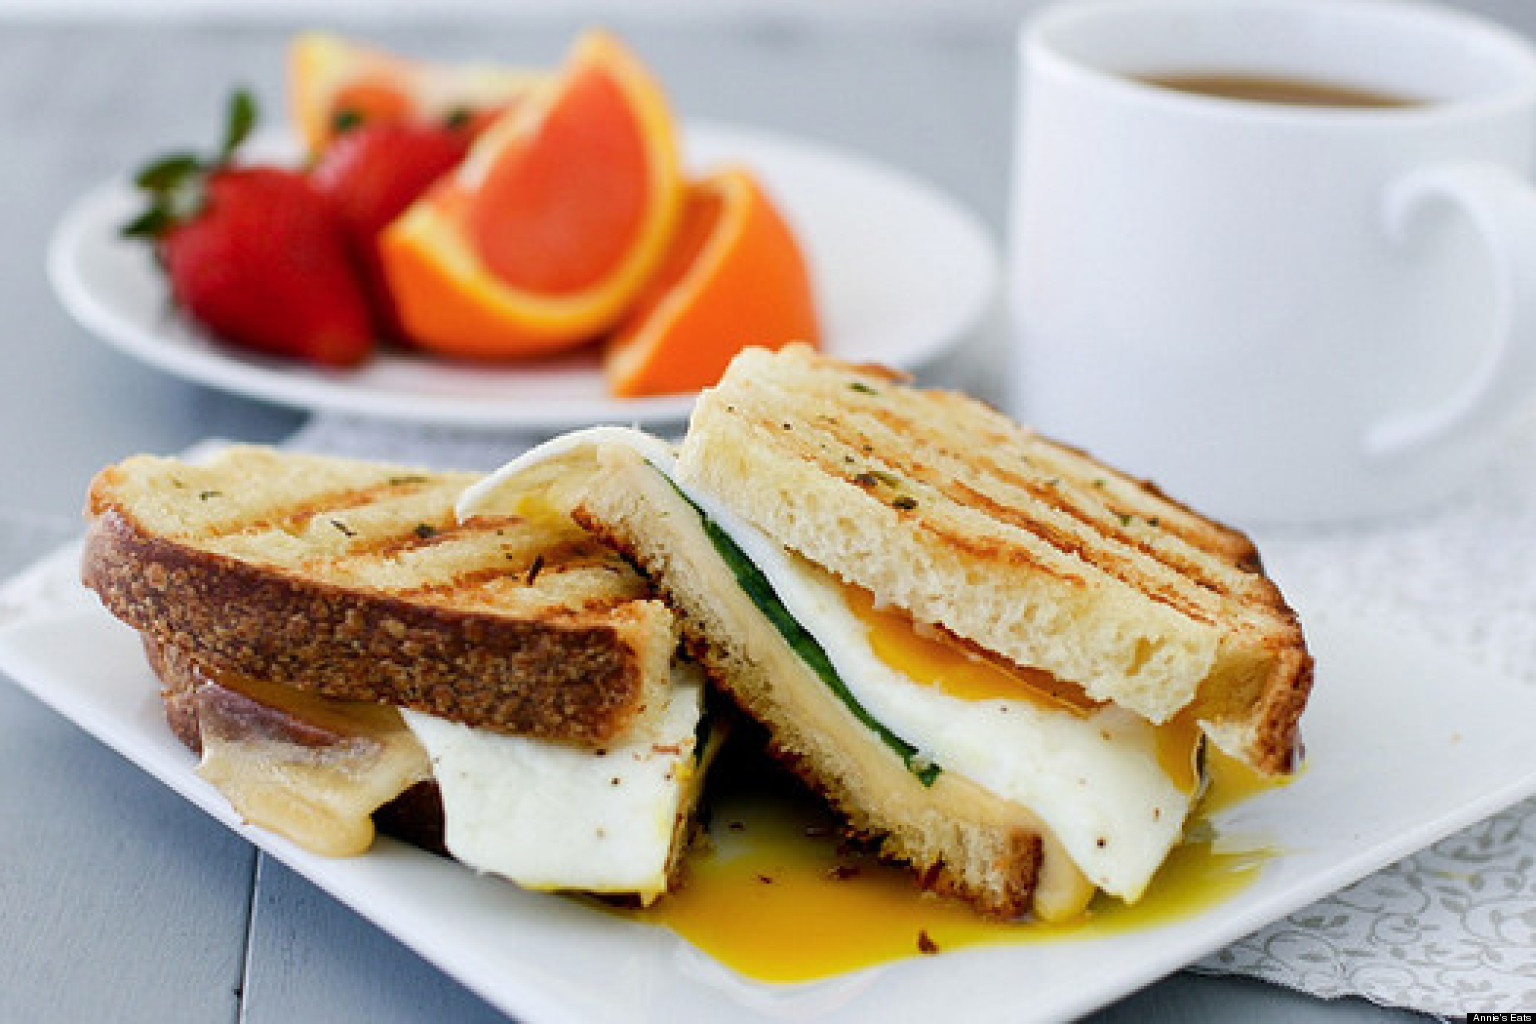 Http Www Huffingtonpost Com 2013 04 01 Quick Breakfast Recipes N 2978953 Html